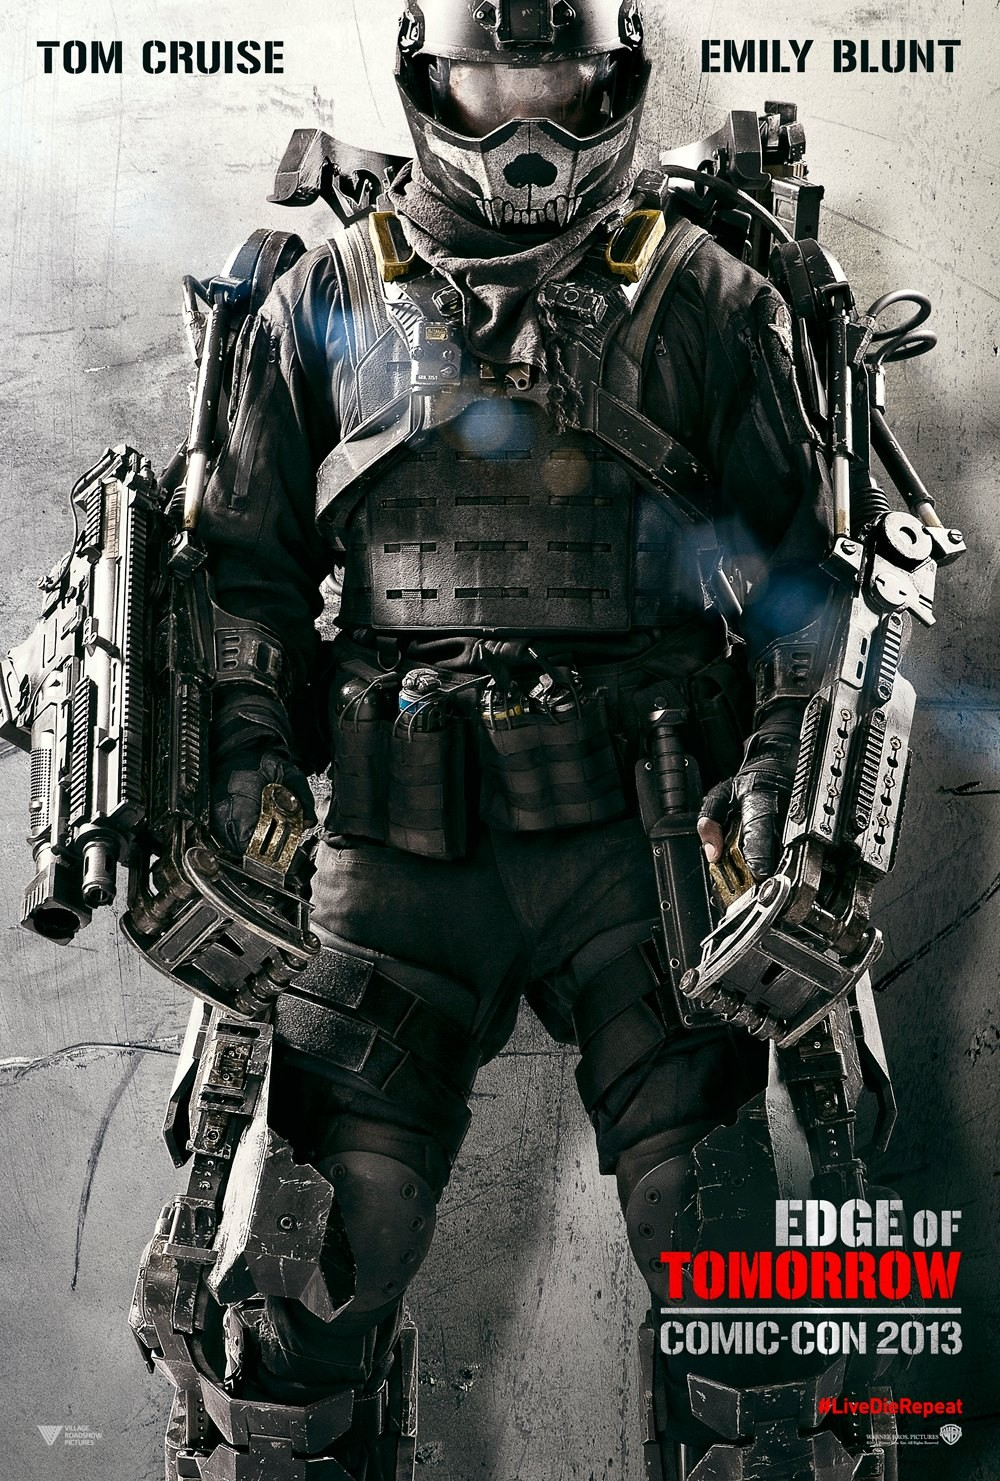 Cruise para rato: Edge of Tomorrow y Mission Imposible 5.